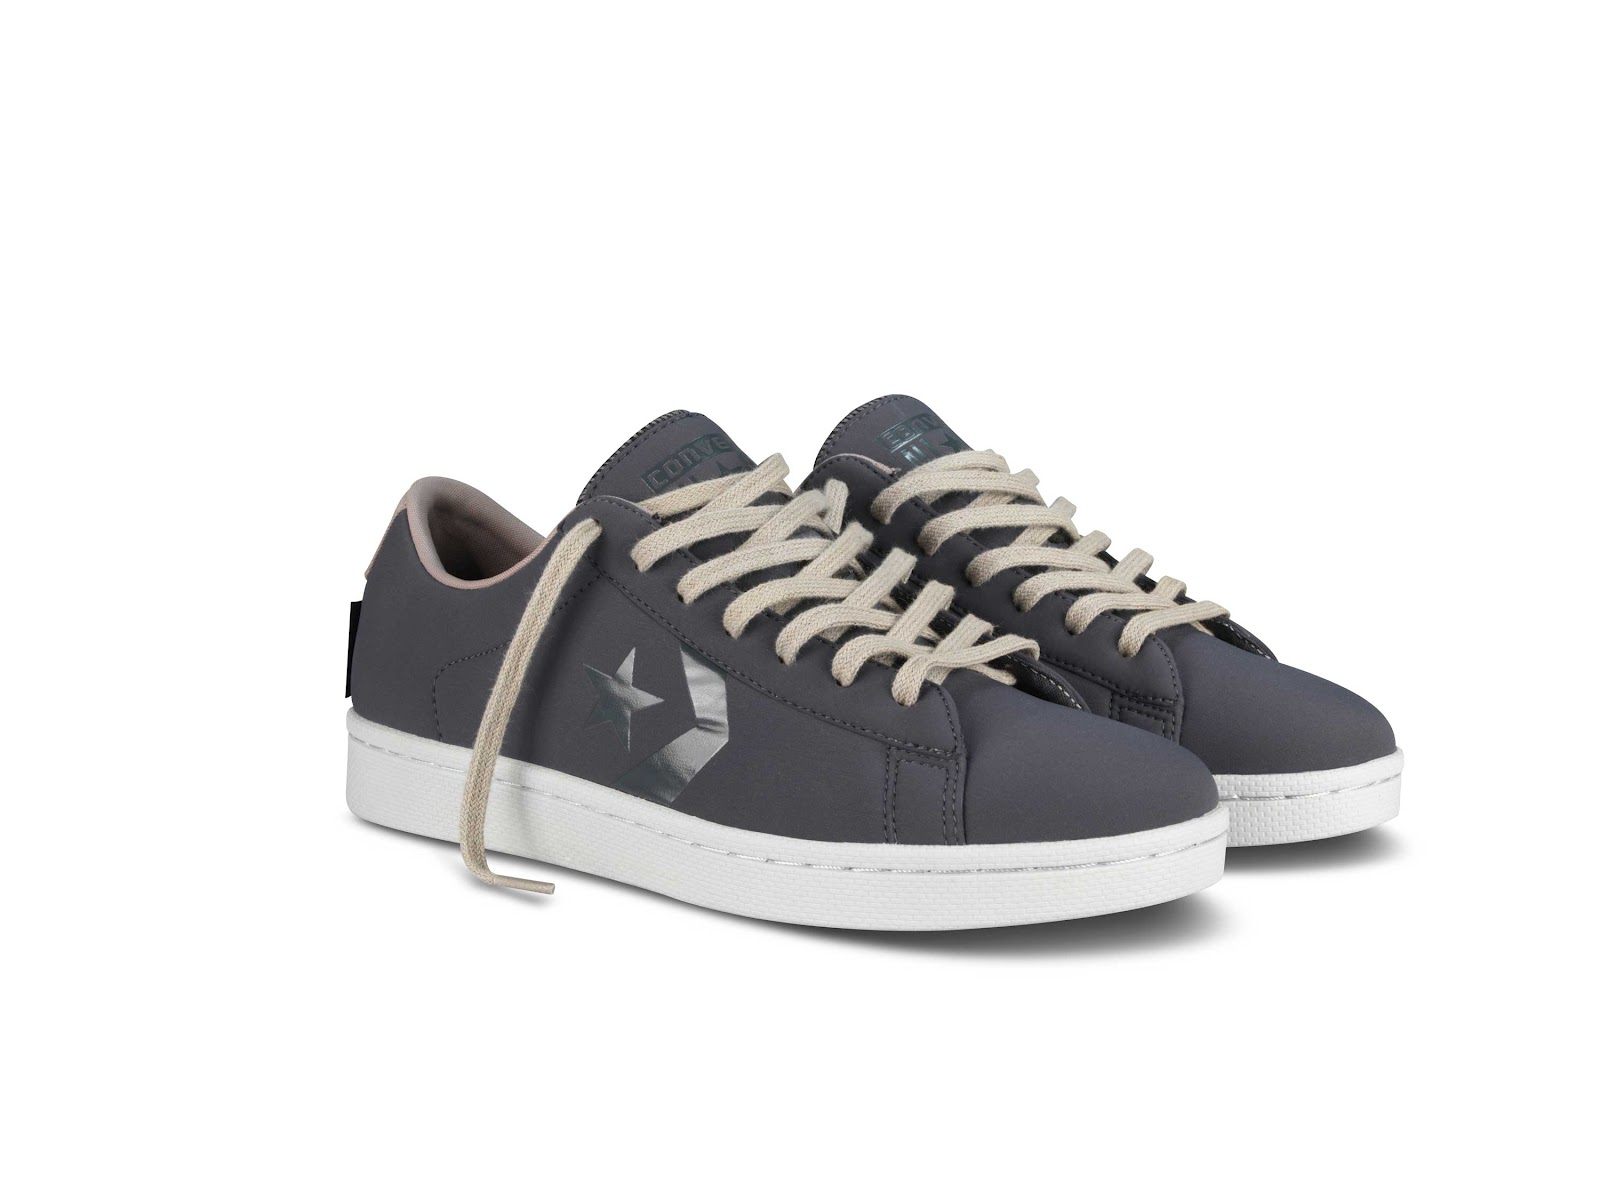 Schoeller x Converse First String Pro Leather OX